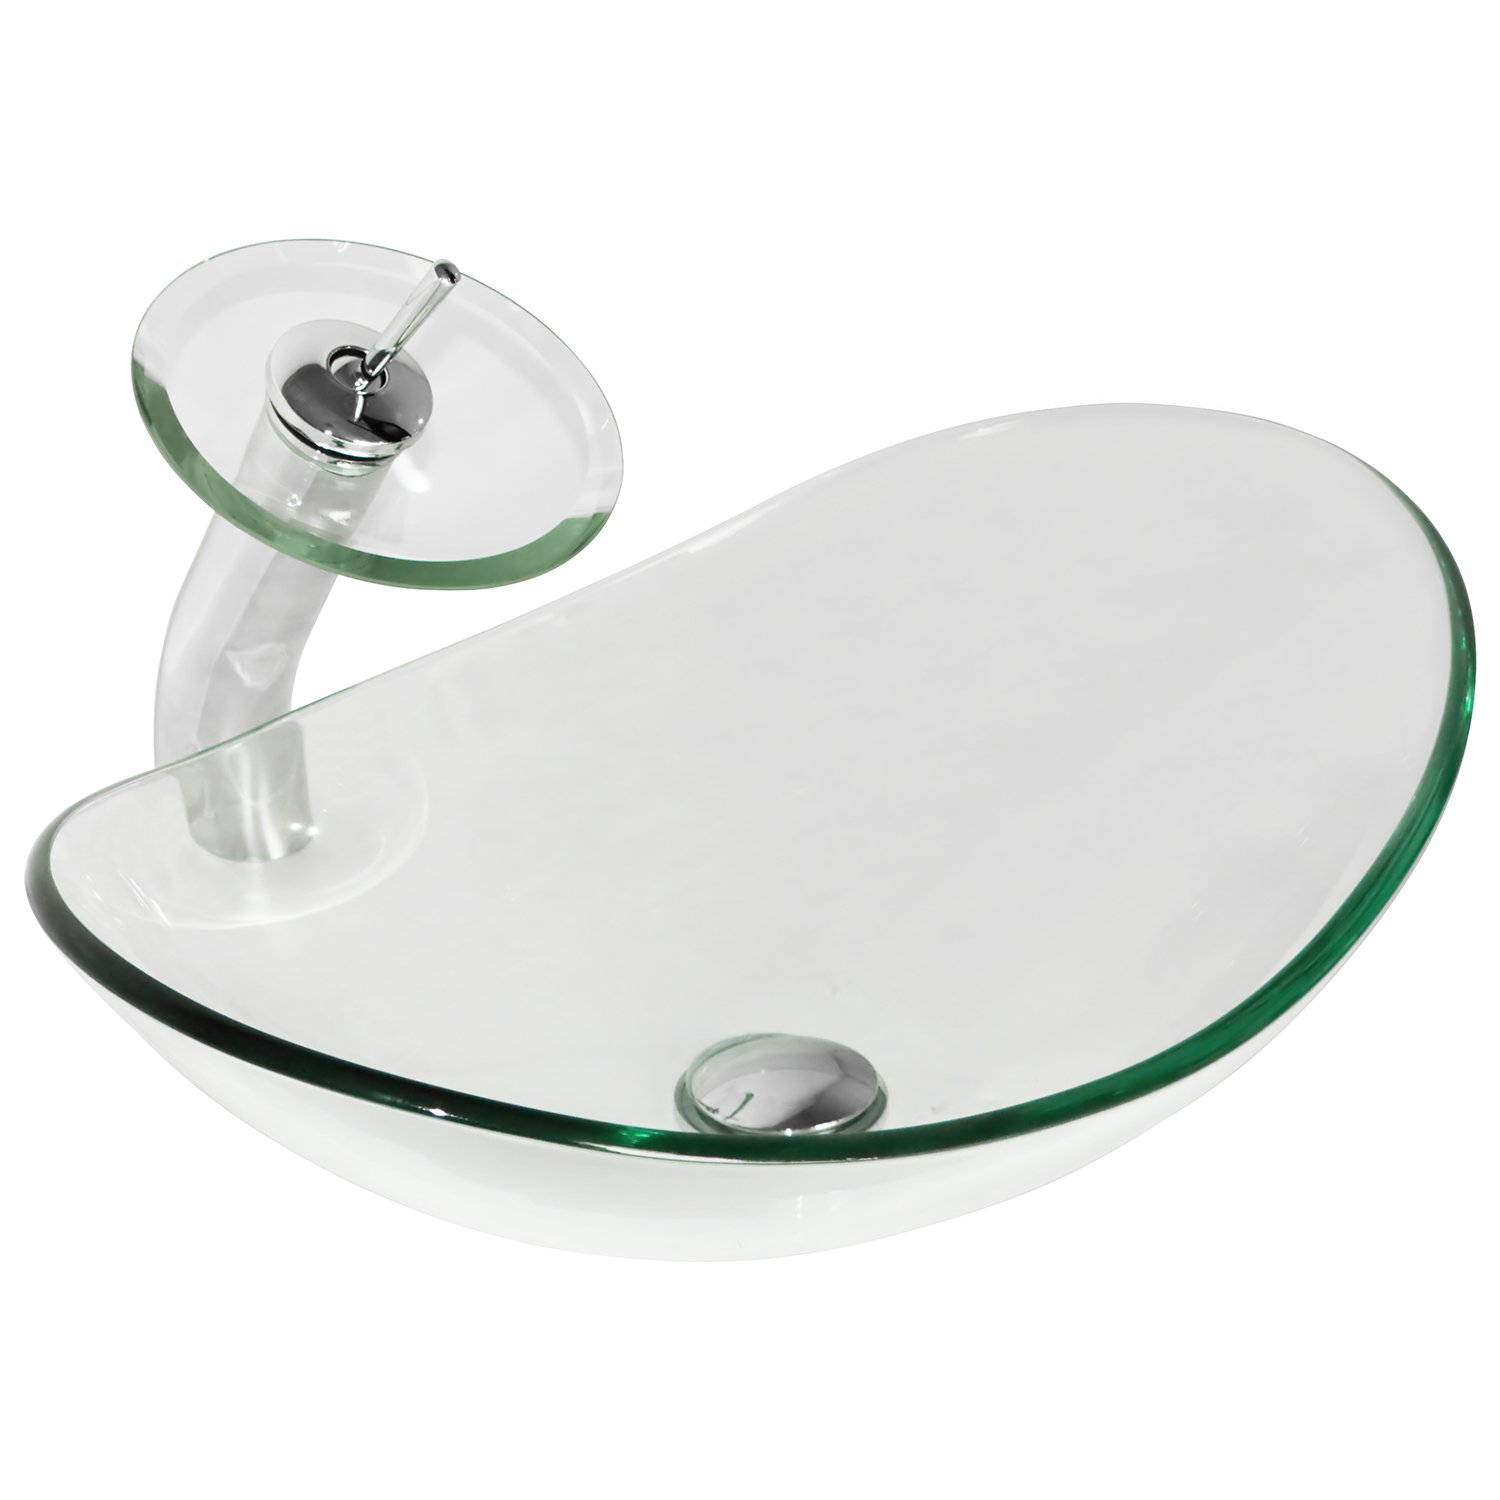 Walcut Green Light Series Oval Temepered Glass Vessel Sink Bath Sink Bowl With Art Waterfall Faucet Set